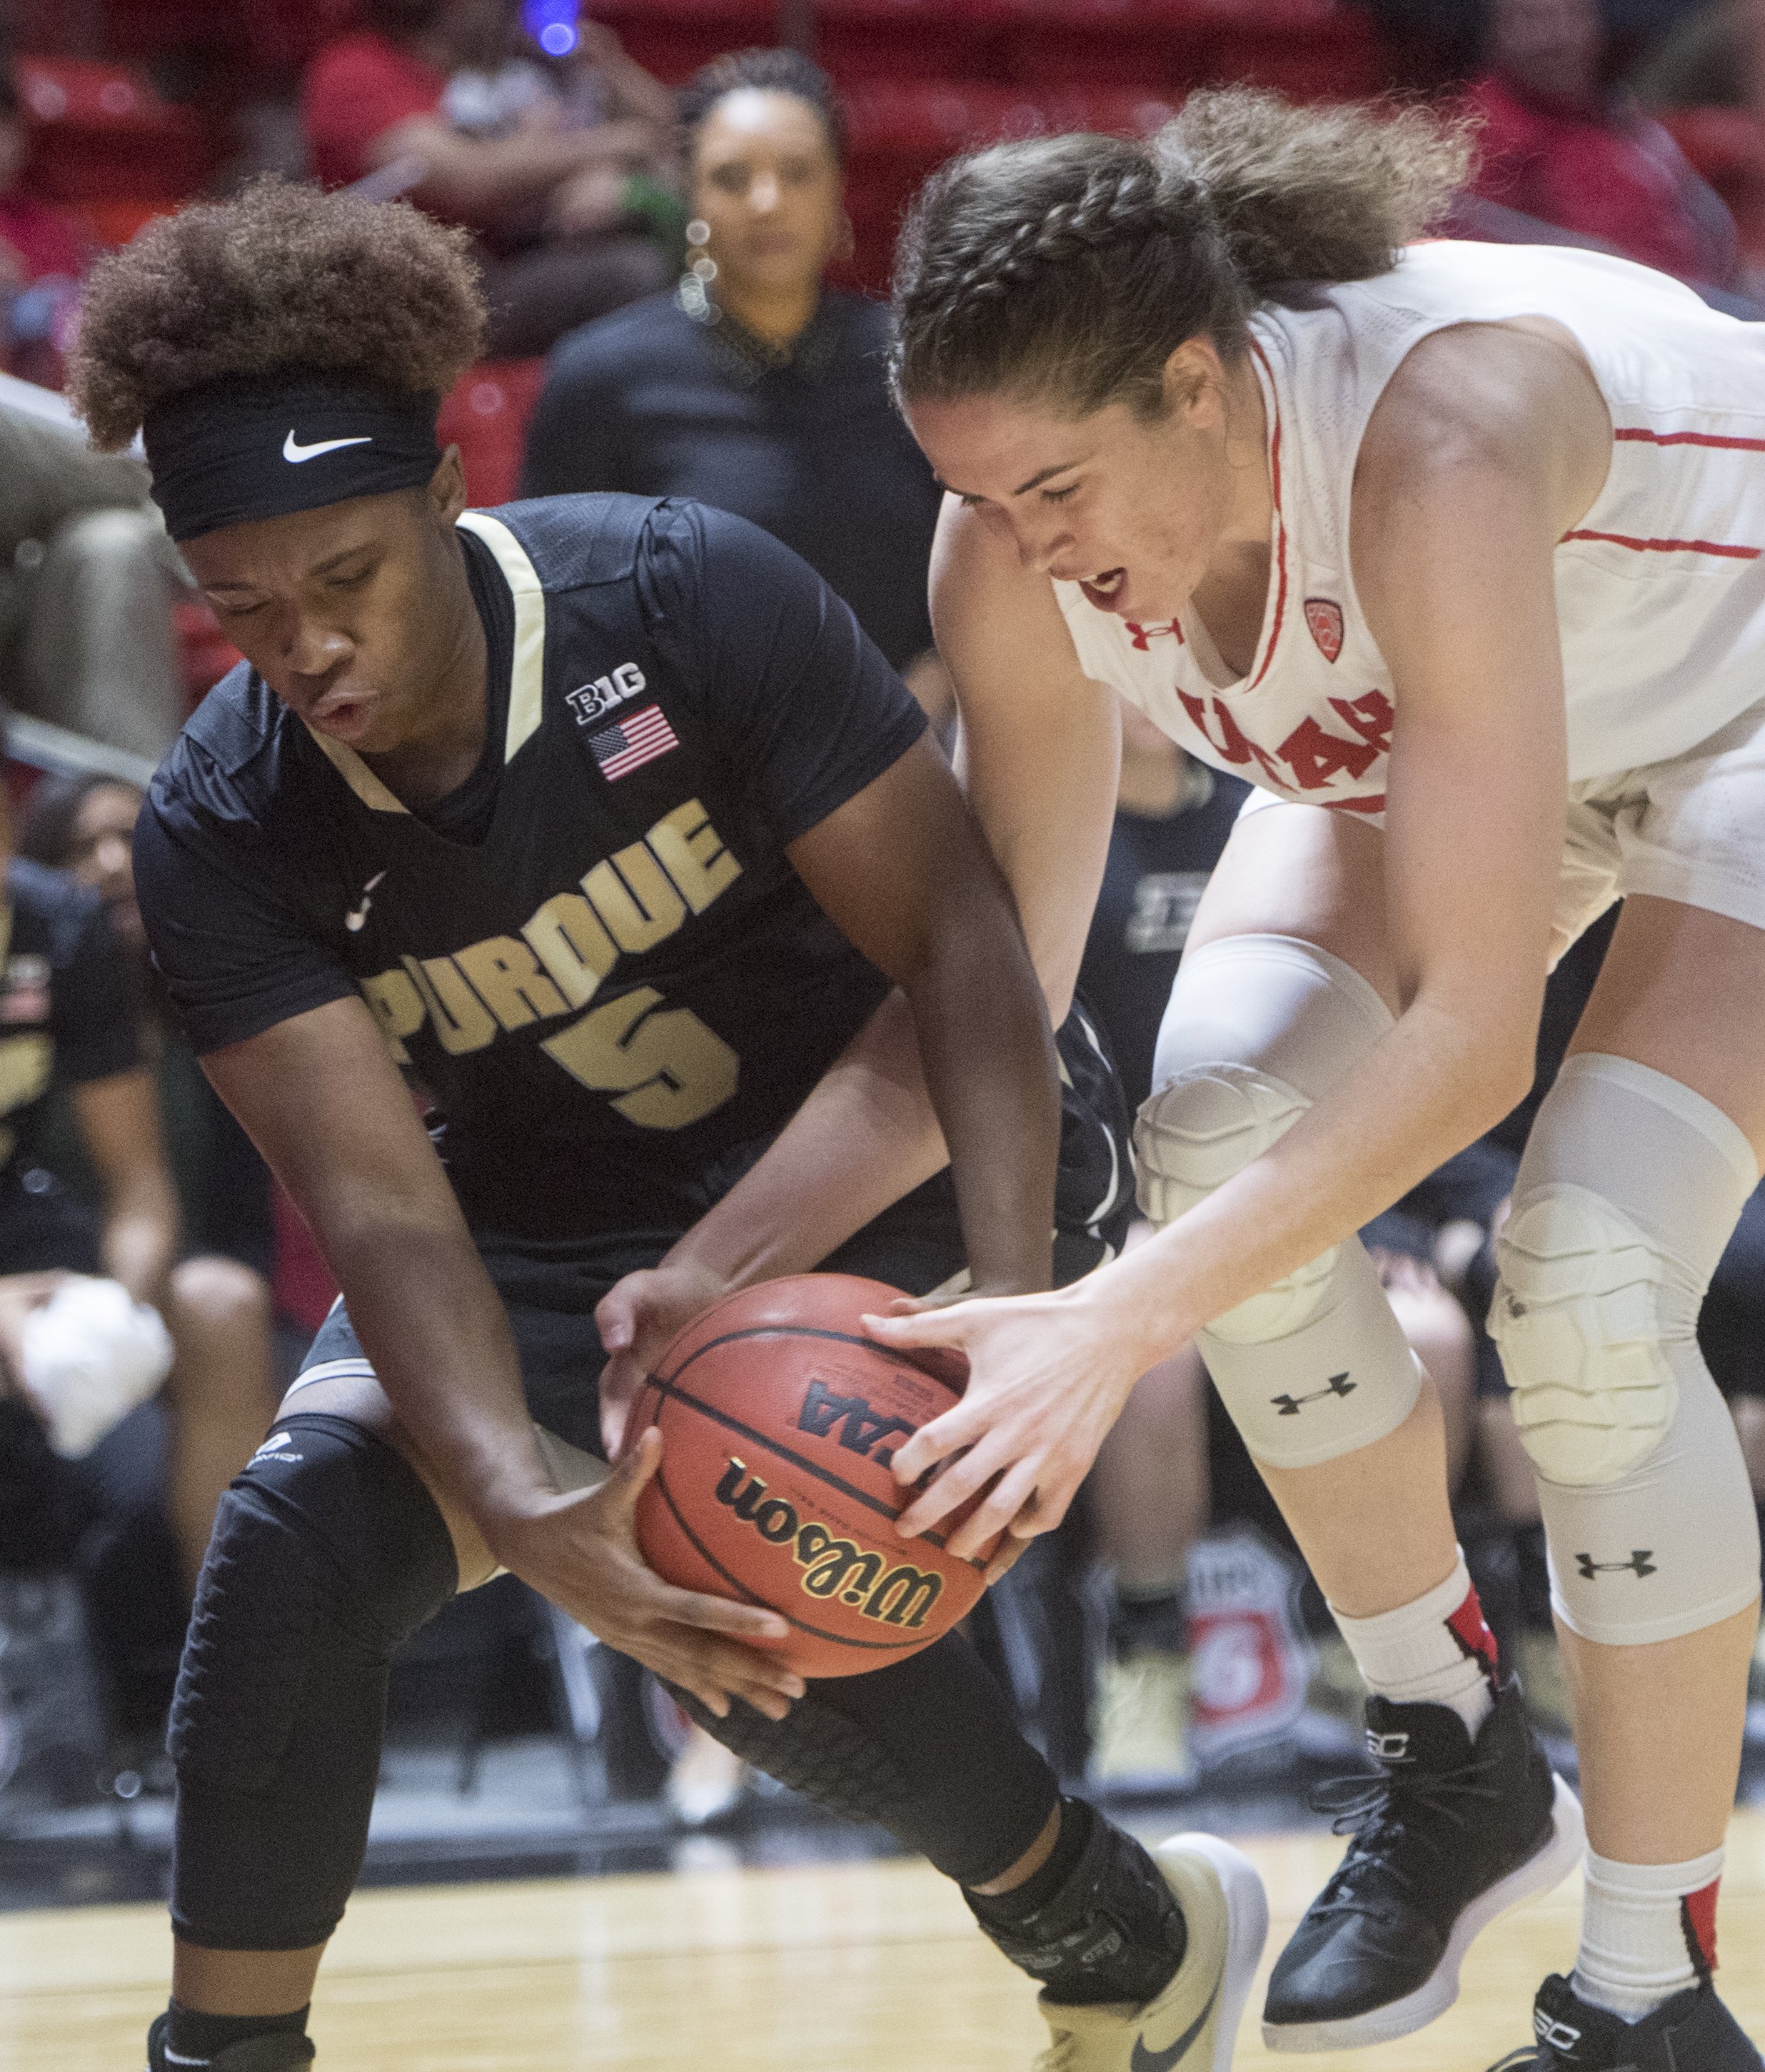 (Rick Egan  |  The Salt Lake Tribune)  Utah Utes forward Emily Potter (12) goes for the ball along with Purdue Boilermakers guard Miracle Gray (5), in basketball action Utah Utes vs. Purdue Boilermakers, at the Thomas M. Huntsman Center, Monday, November 20, 2017.